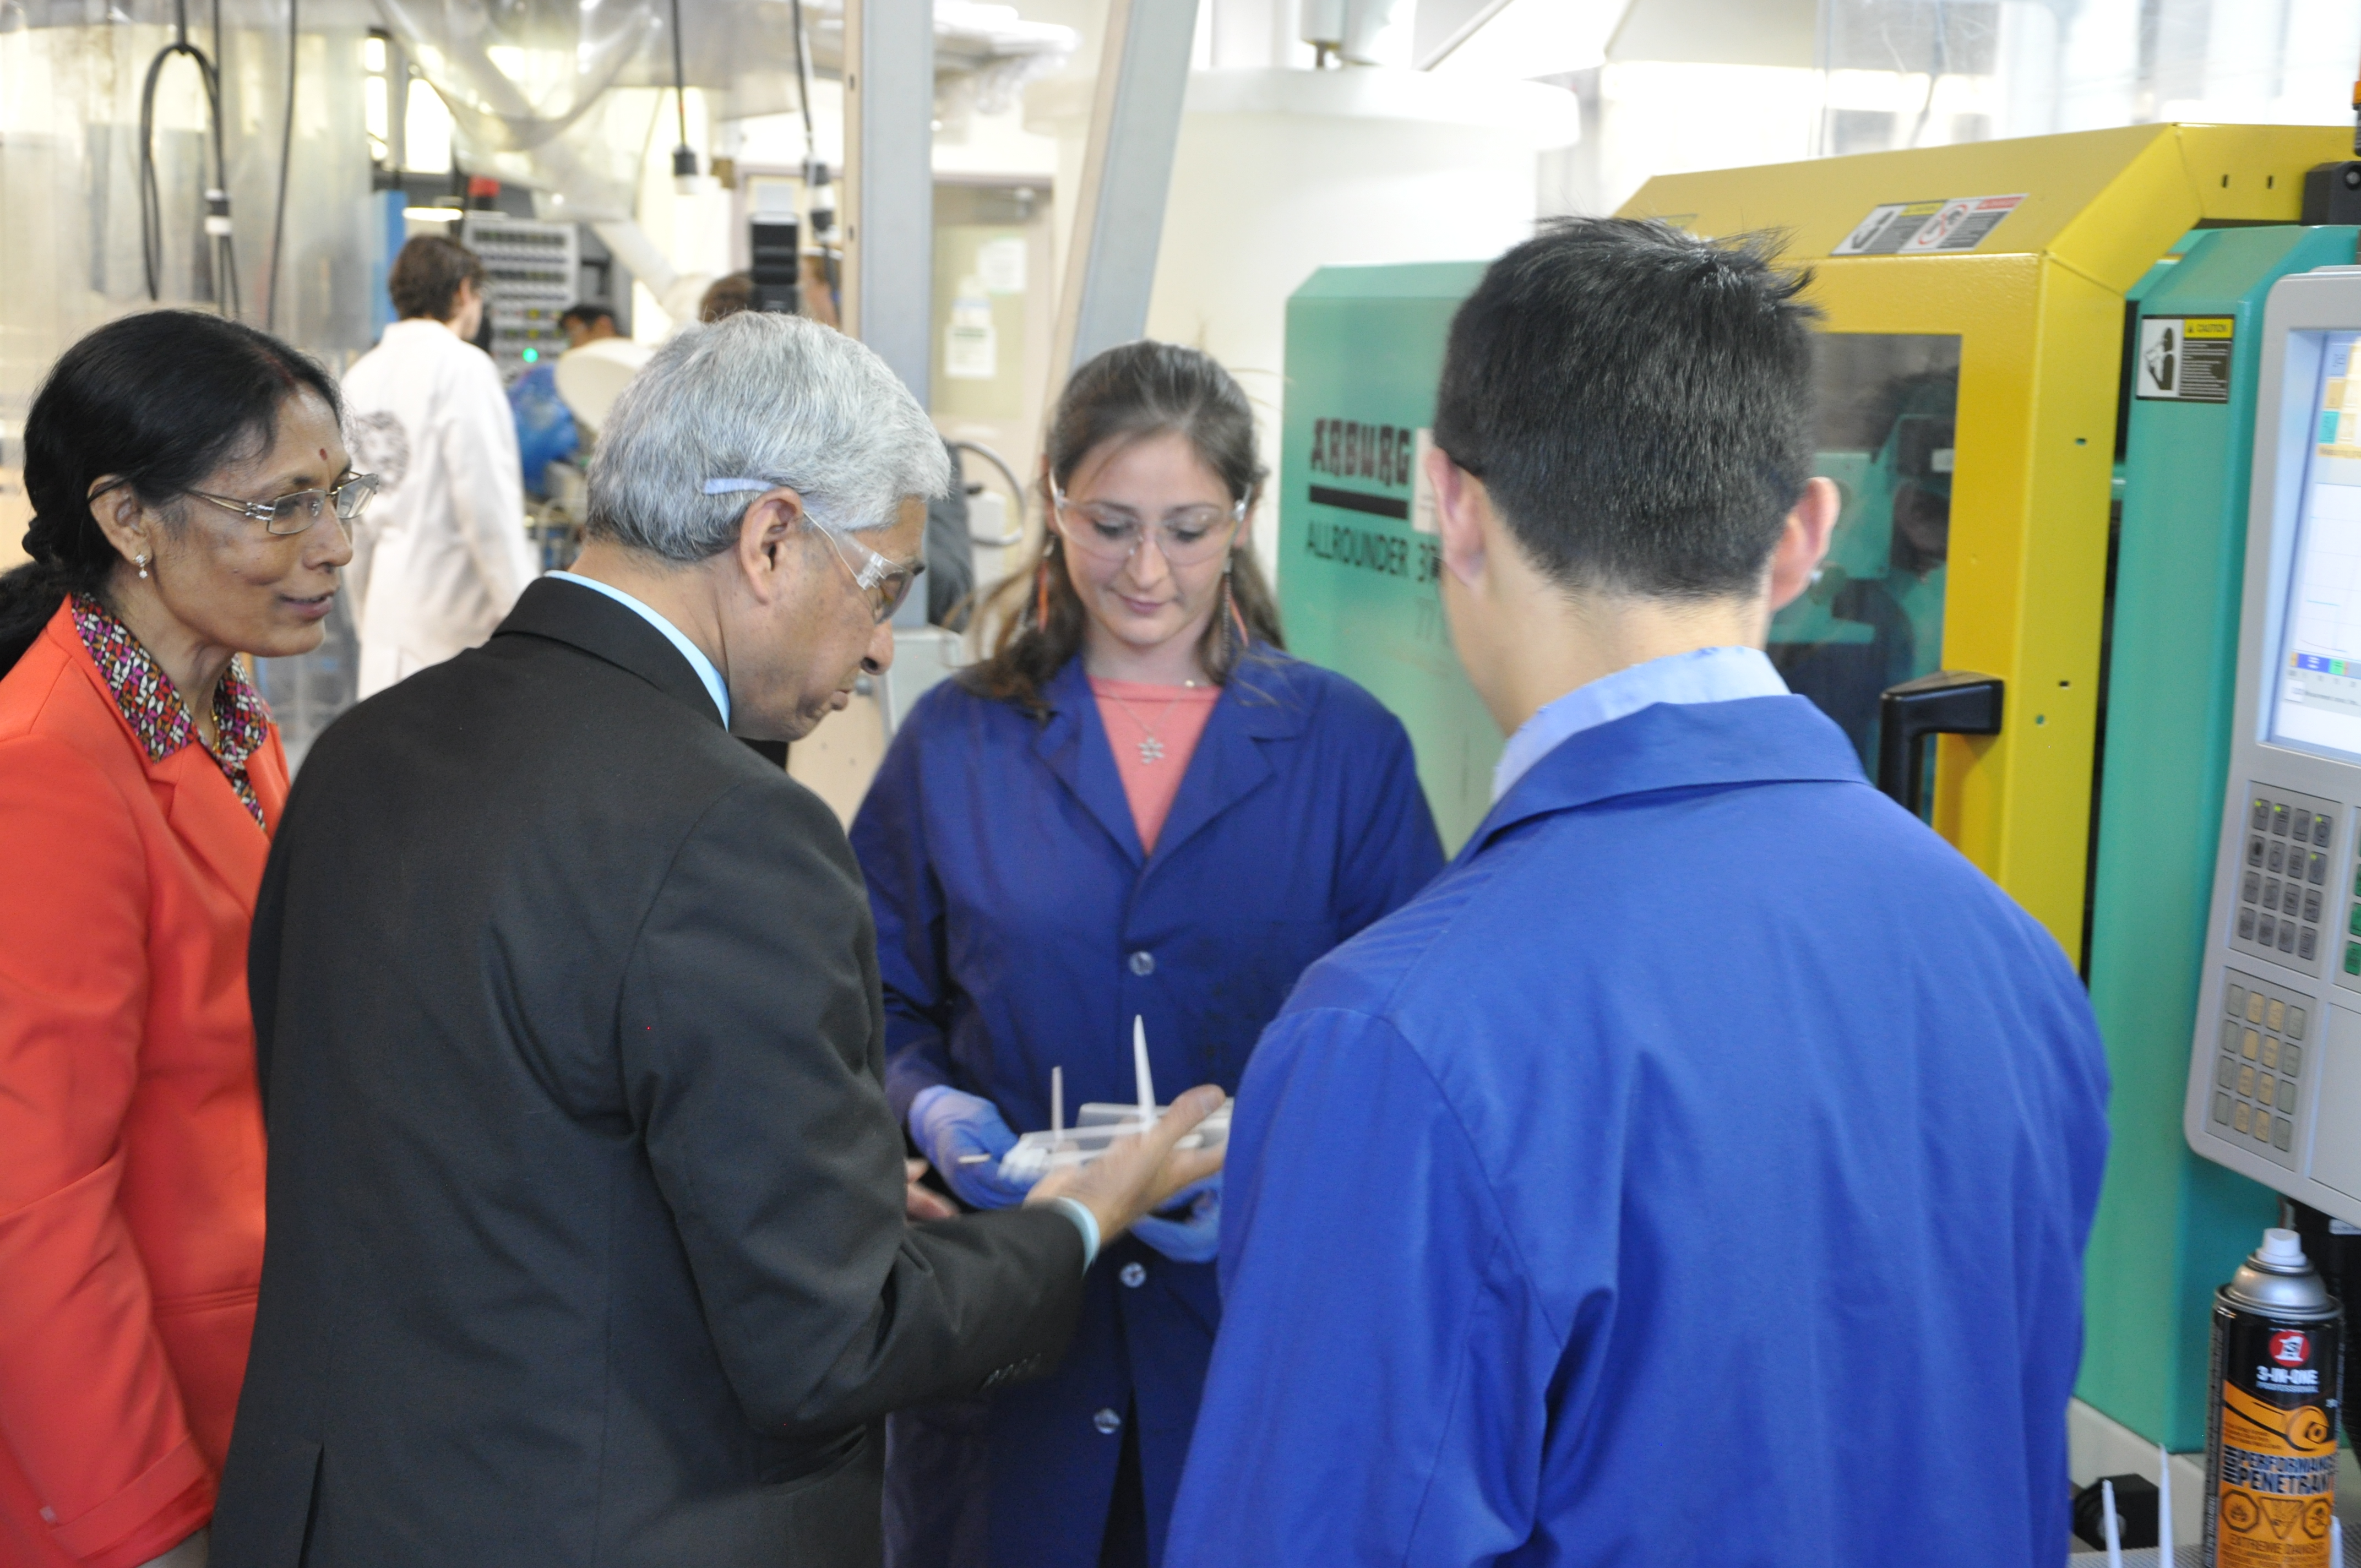 High Commissioner of India given a tour of the bioproducts lab.